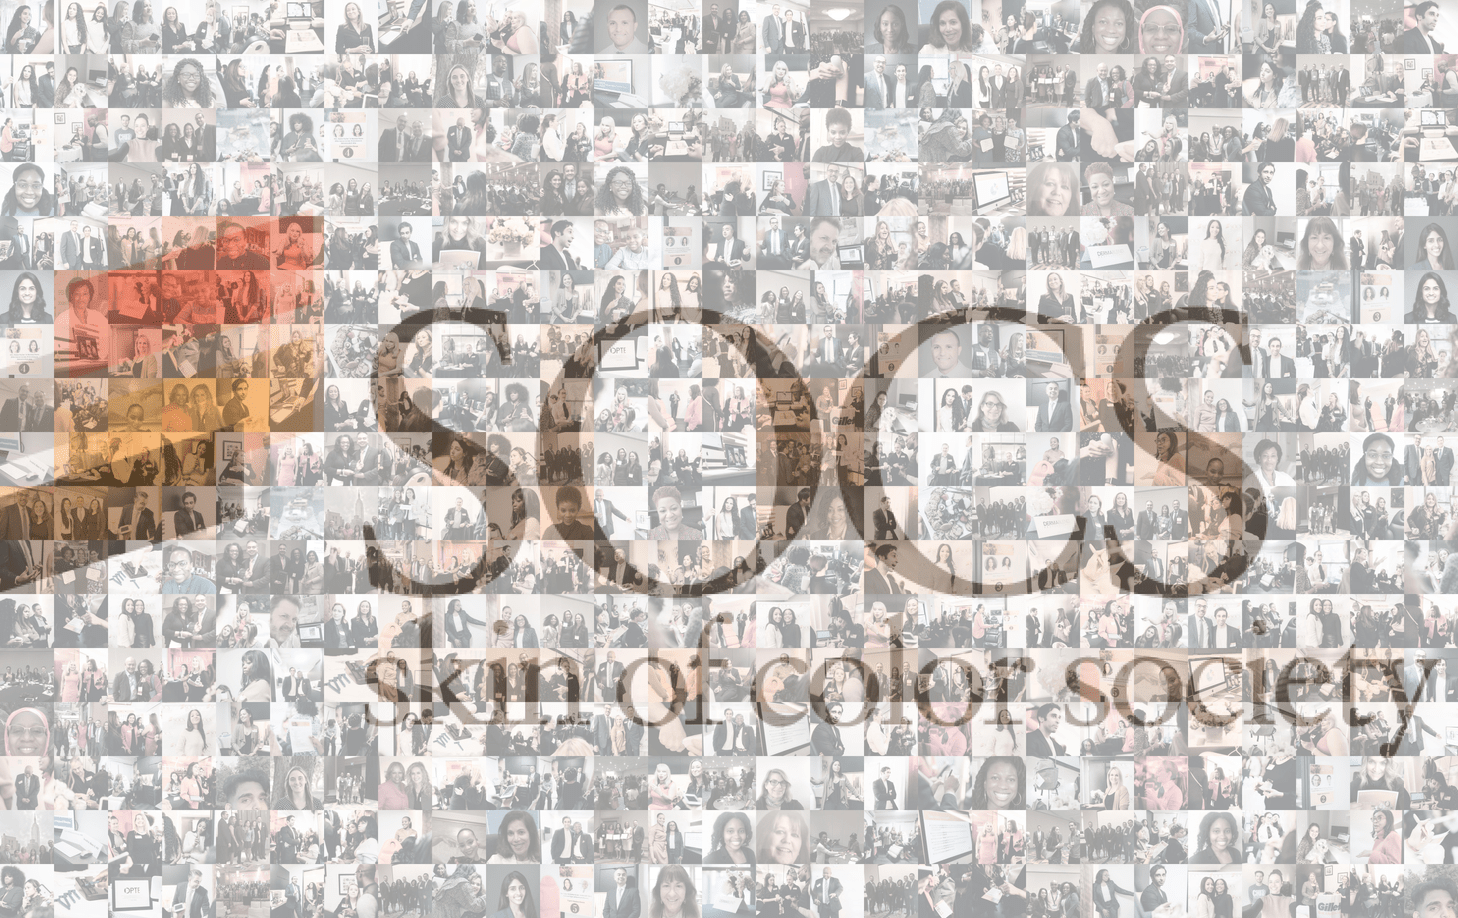 17th Annual Skin of Color Society<br>Virtual Scientific Symposium Recap-banner-image